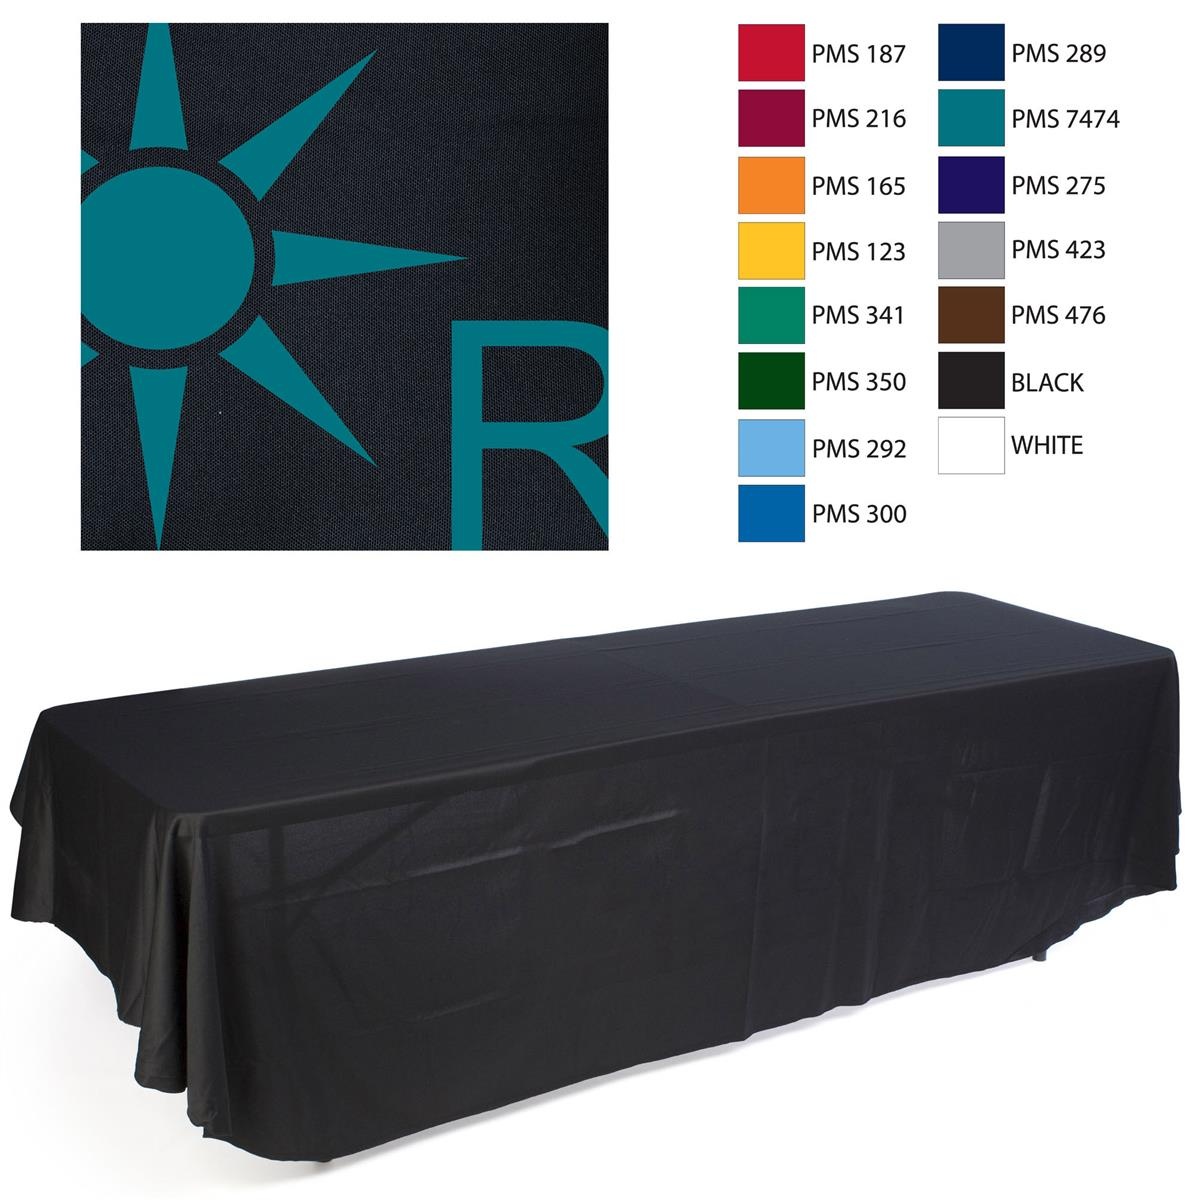 Imprinted Table Cloth Printed Table Throw: Black with 1 Color Logo